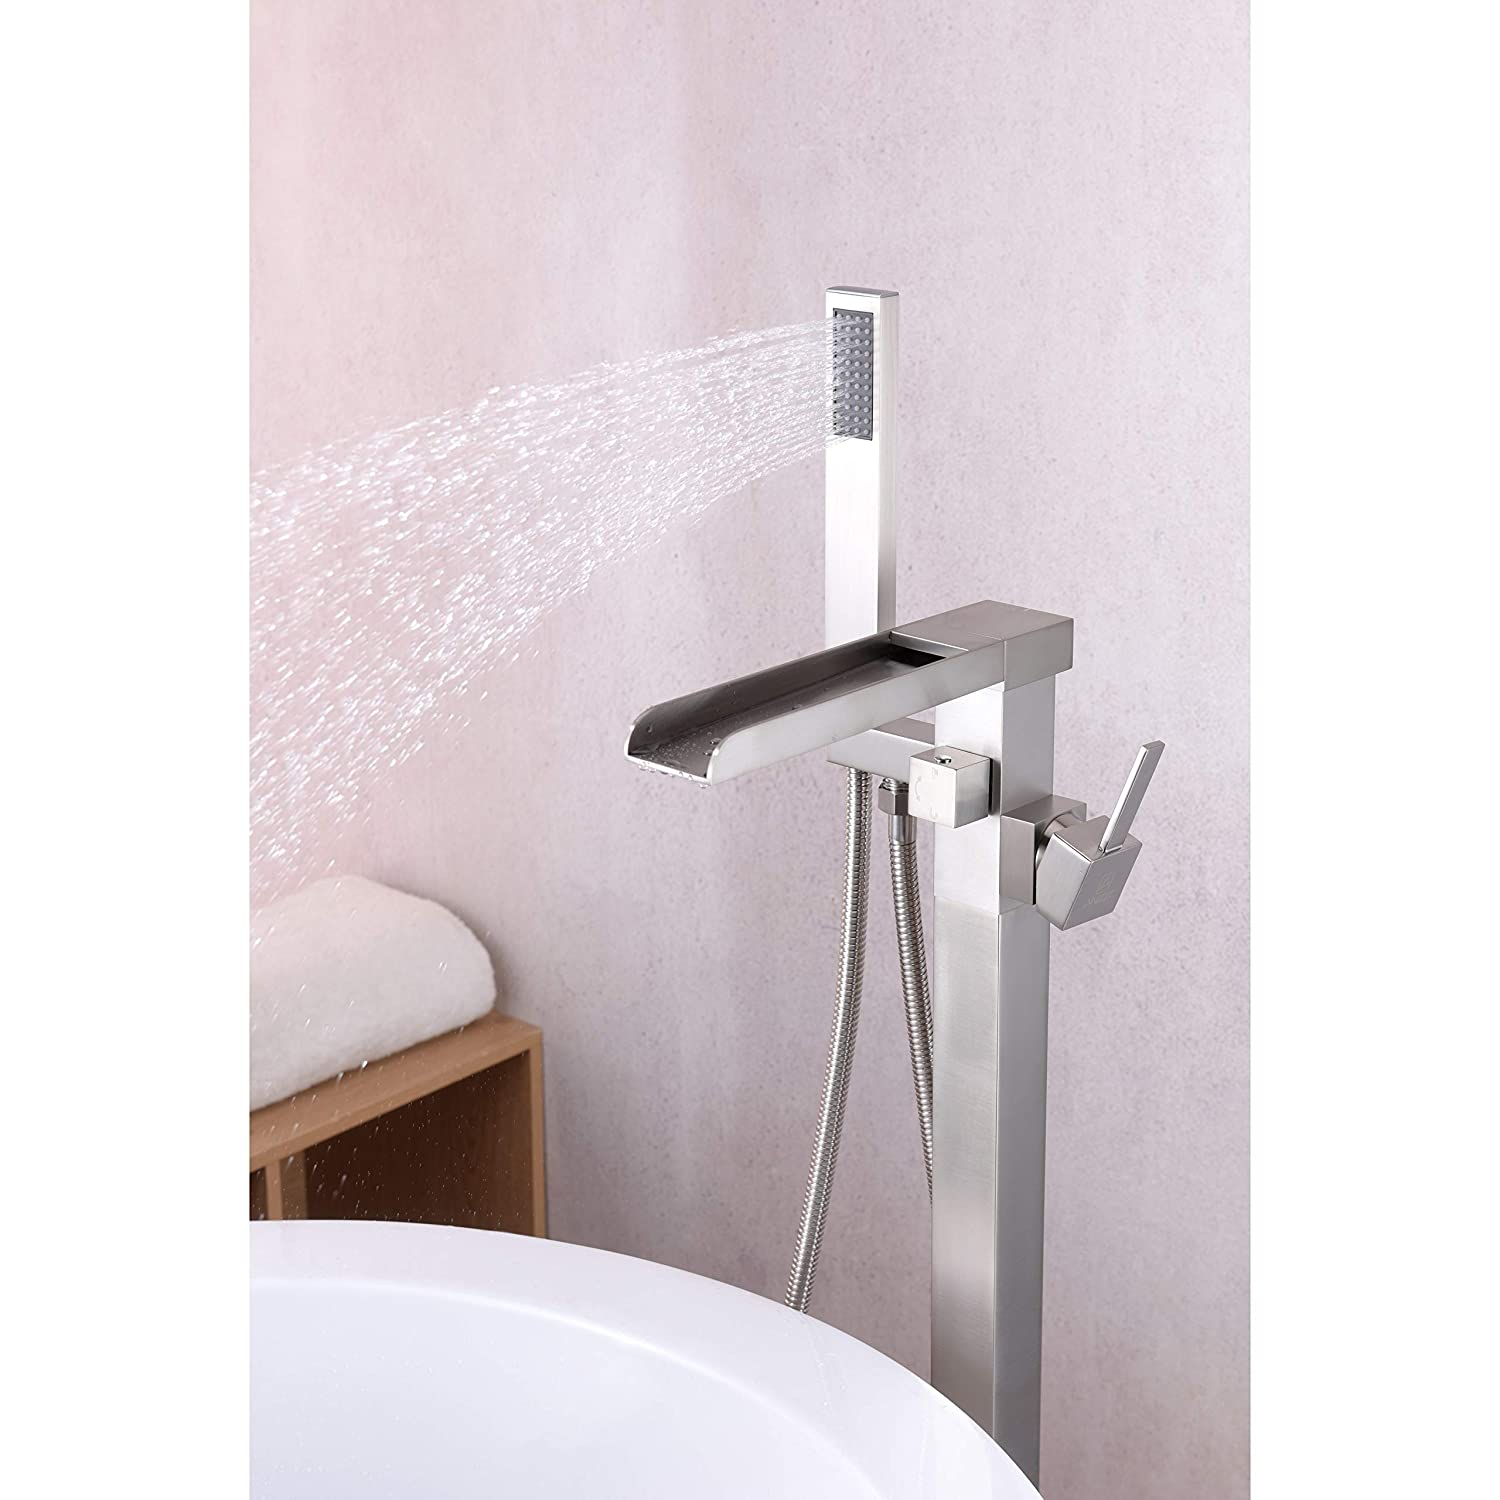 Kitchen Bath Fixtures Anzzi Union Floor Mounted Freestanding Bathtub Faucet In Brushed Nickel Clawfoot Tub Faucet With Extra Long Shower Hose Handheld Shower Sprayer 2 Handle Waterfall Tub Filler Fs Az0059bn Tools